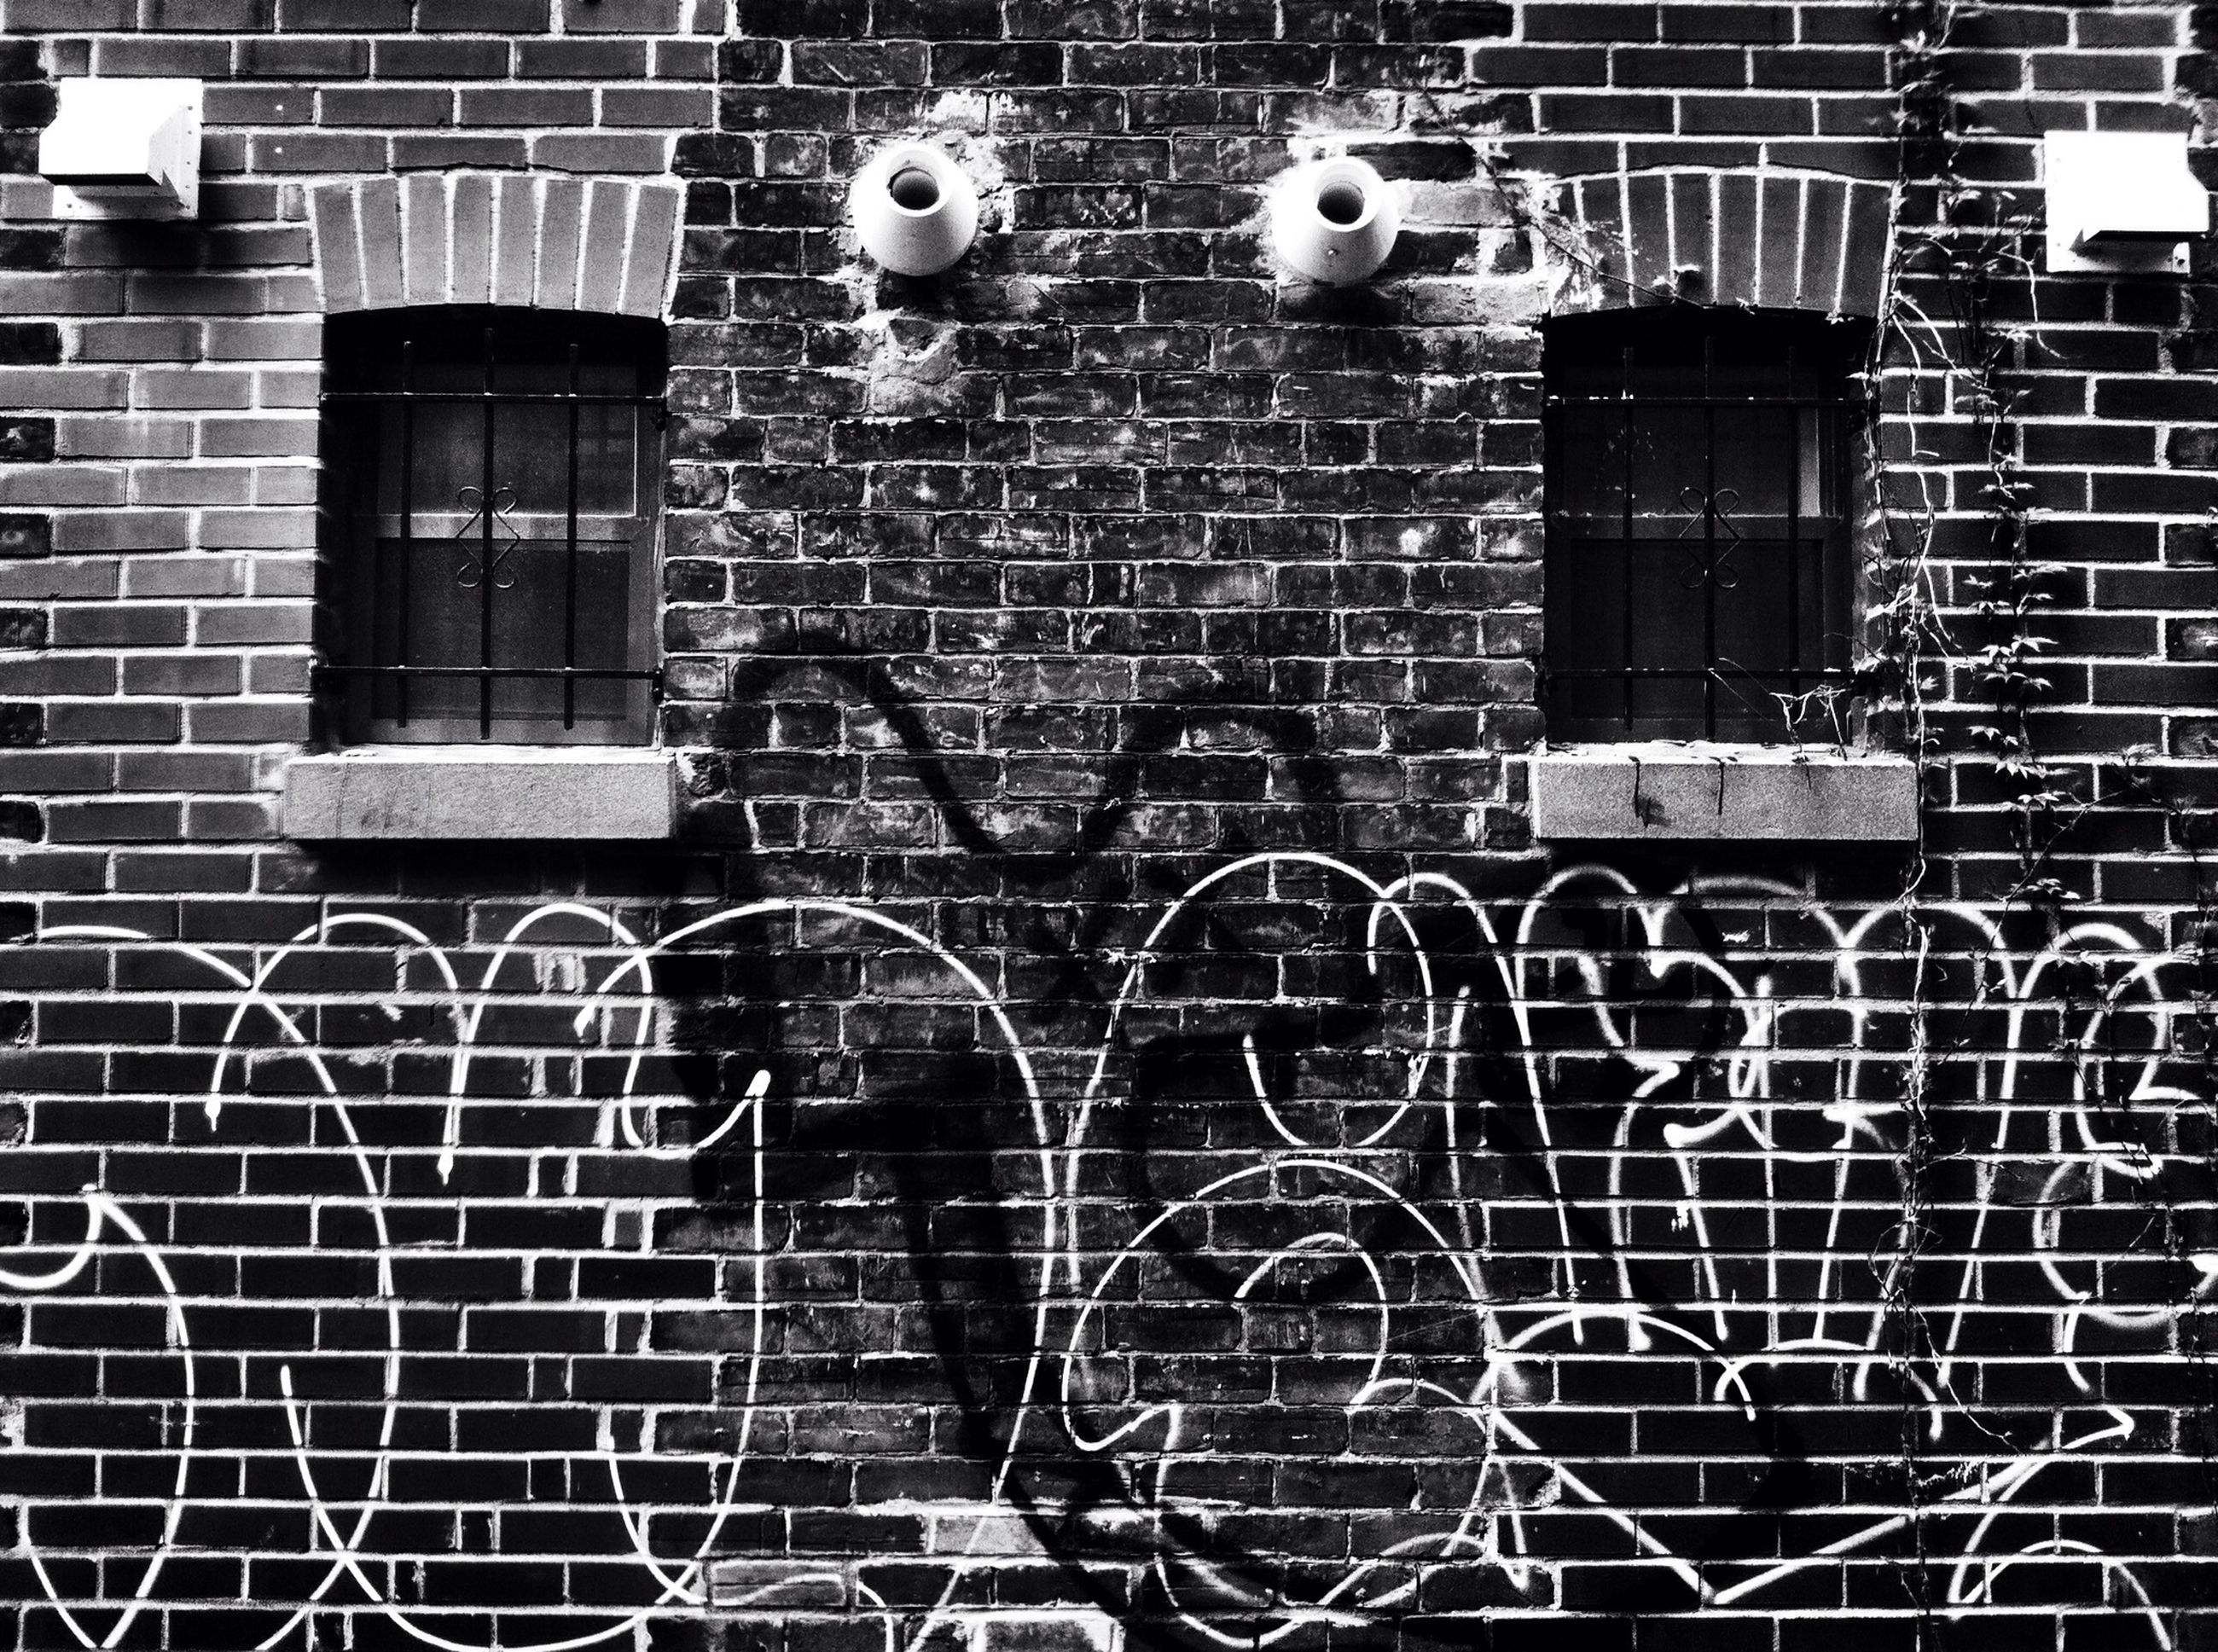 text, built structure, building exterior, architecture, full frame, metal, western script, wall - building feature, pattern, brick wall, backgrounds, metal grate, communication, graffiti, chainlink fence, art and craft, outdoors, bicycle, wall, creativity